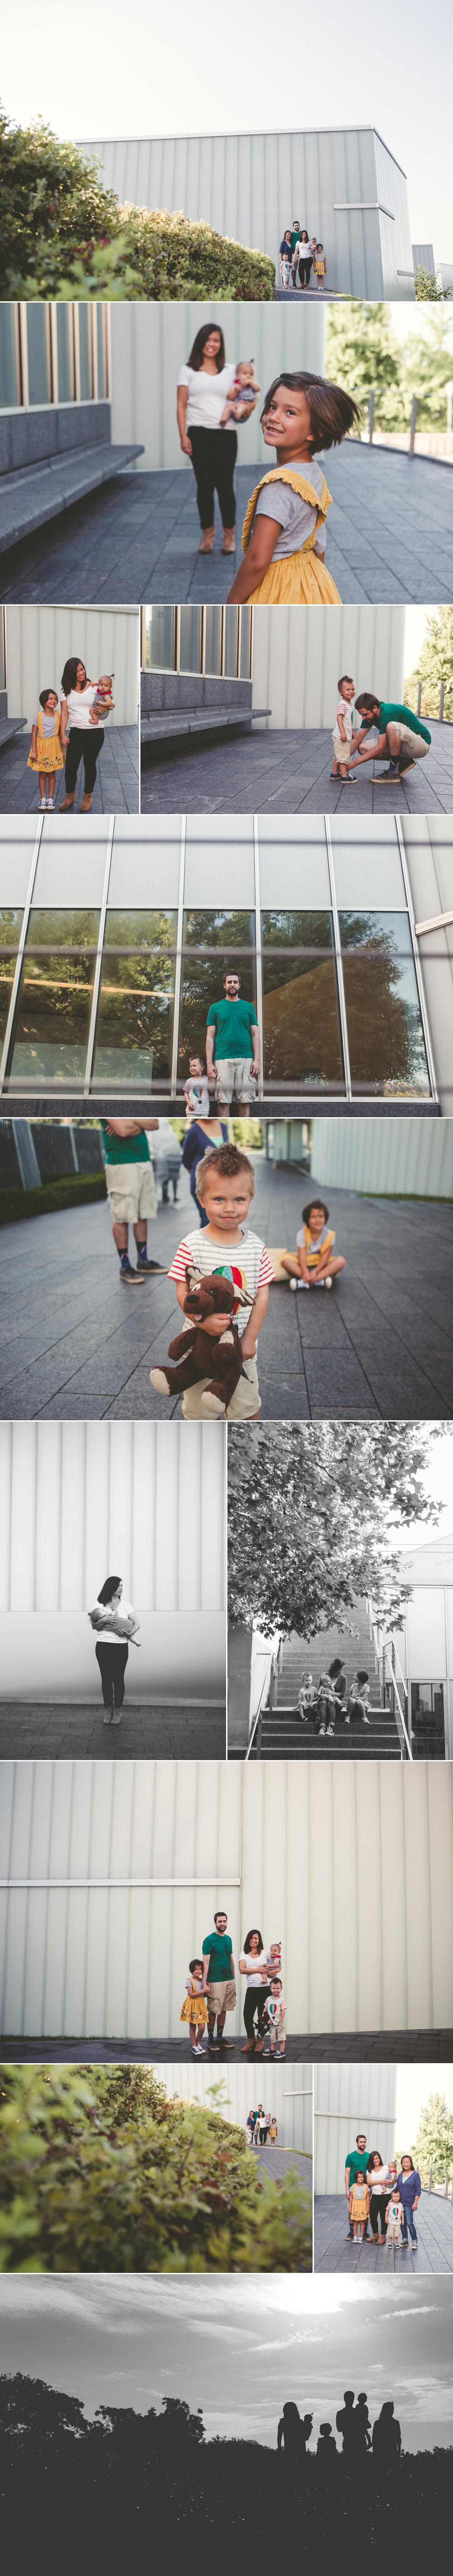 jason_domingues_photography_best_kansas_city_photographer_kc_family_session_nelson_atkins